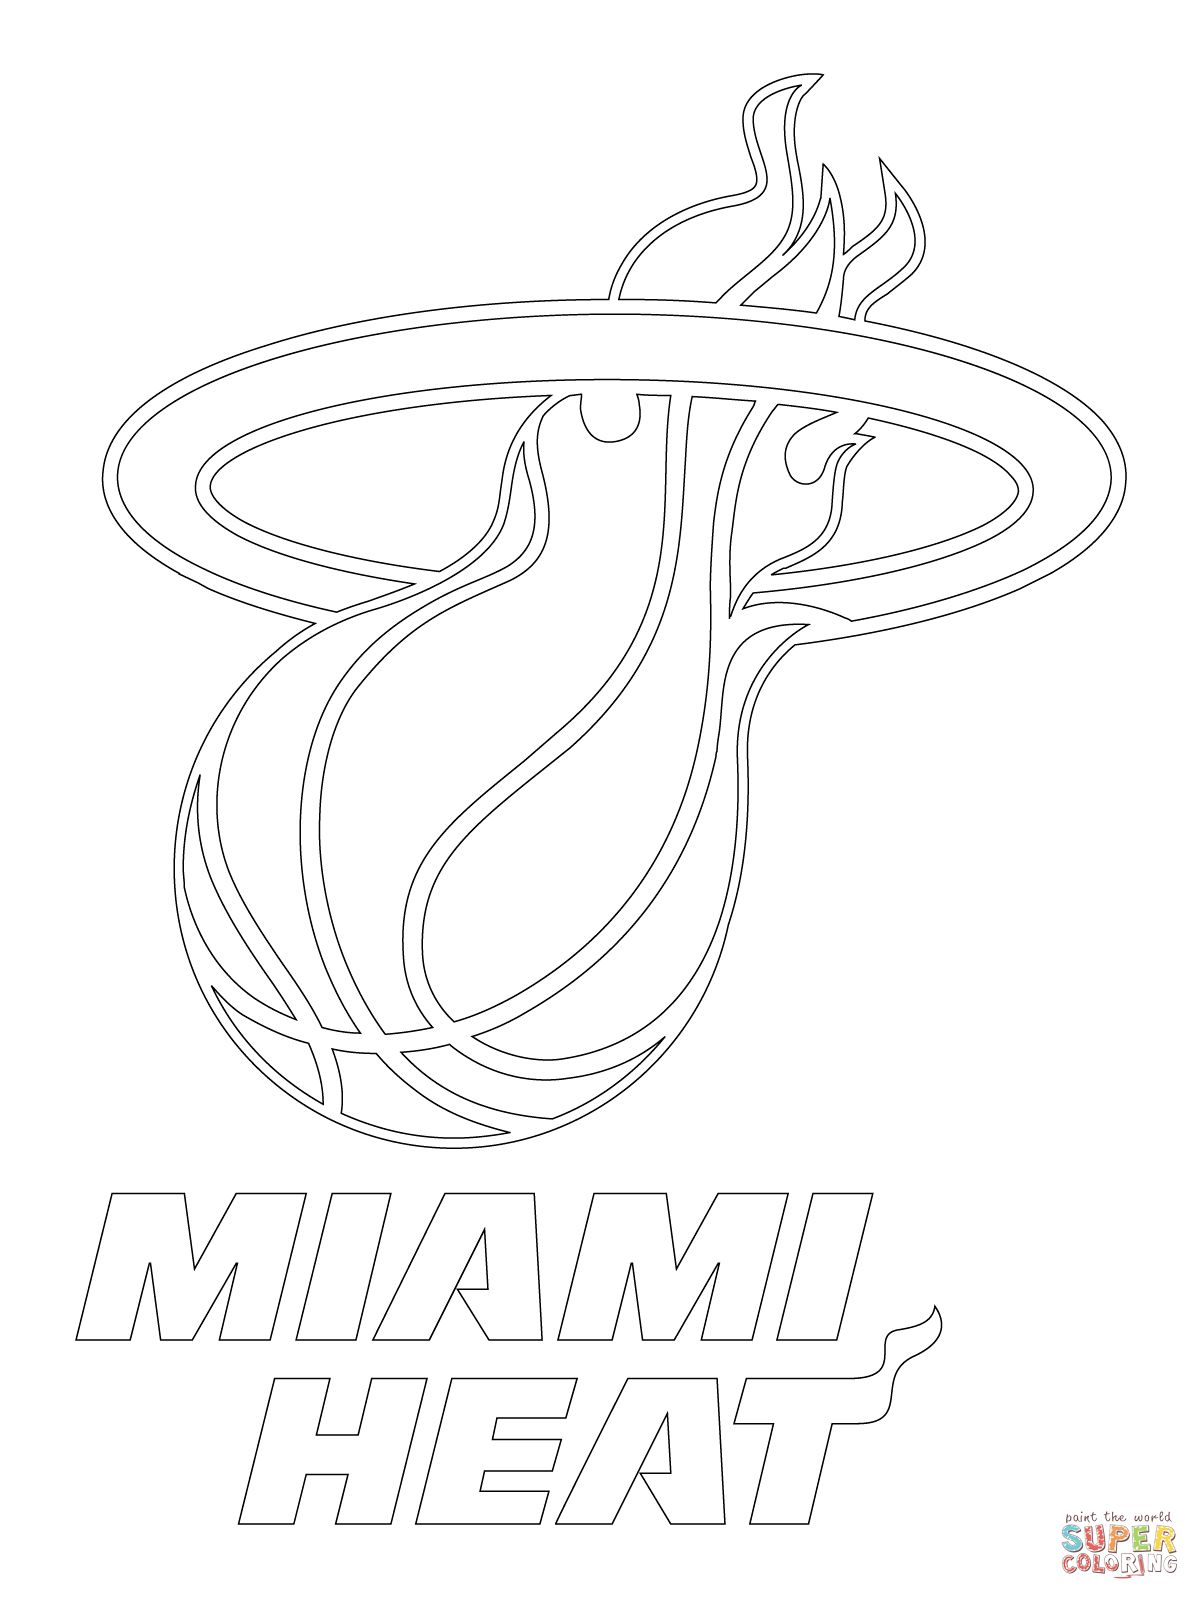 coloring pages sports logos miami heat logo coloring page supercoloringcom miami logos pages sports coloring